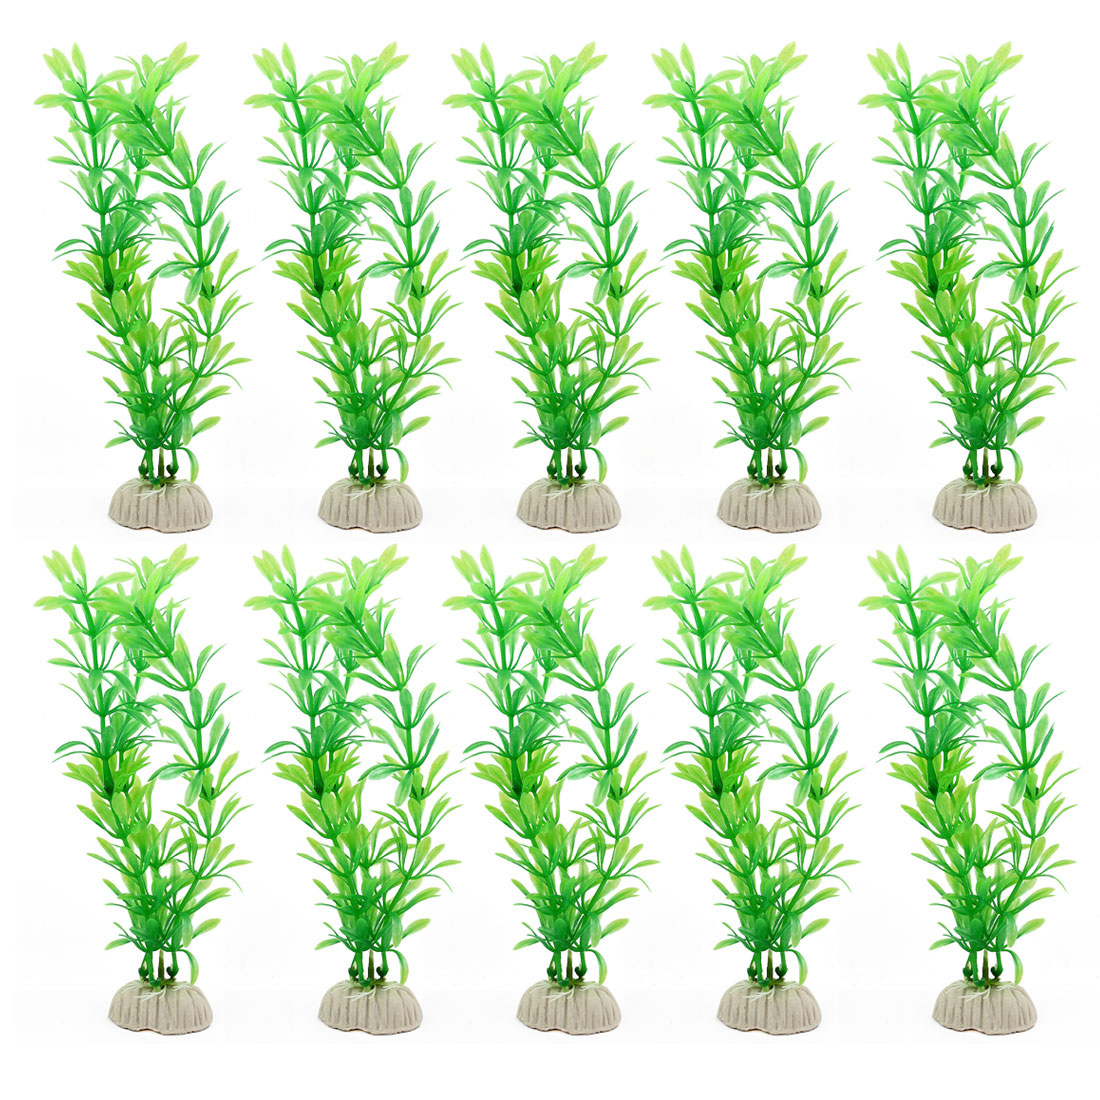 Aquarium Fish Tank Plastic Landscape Ornament Underwater Grass Plants Green 20cm Height 10 Pcs